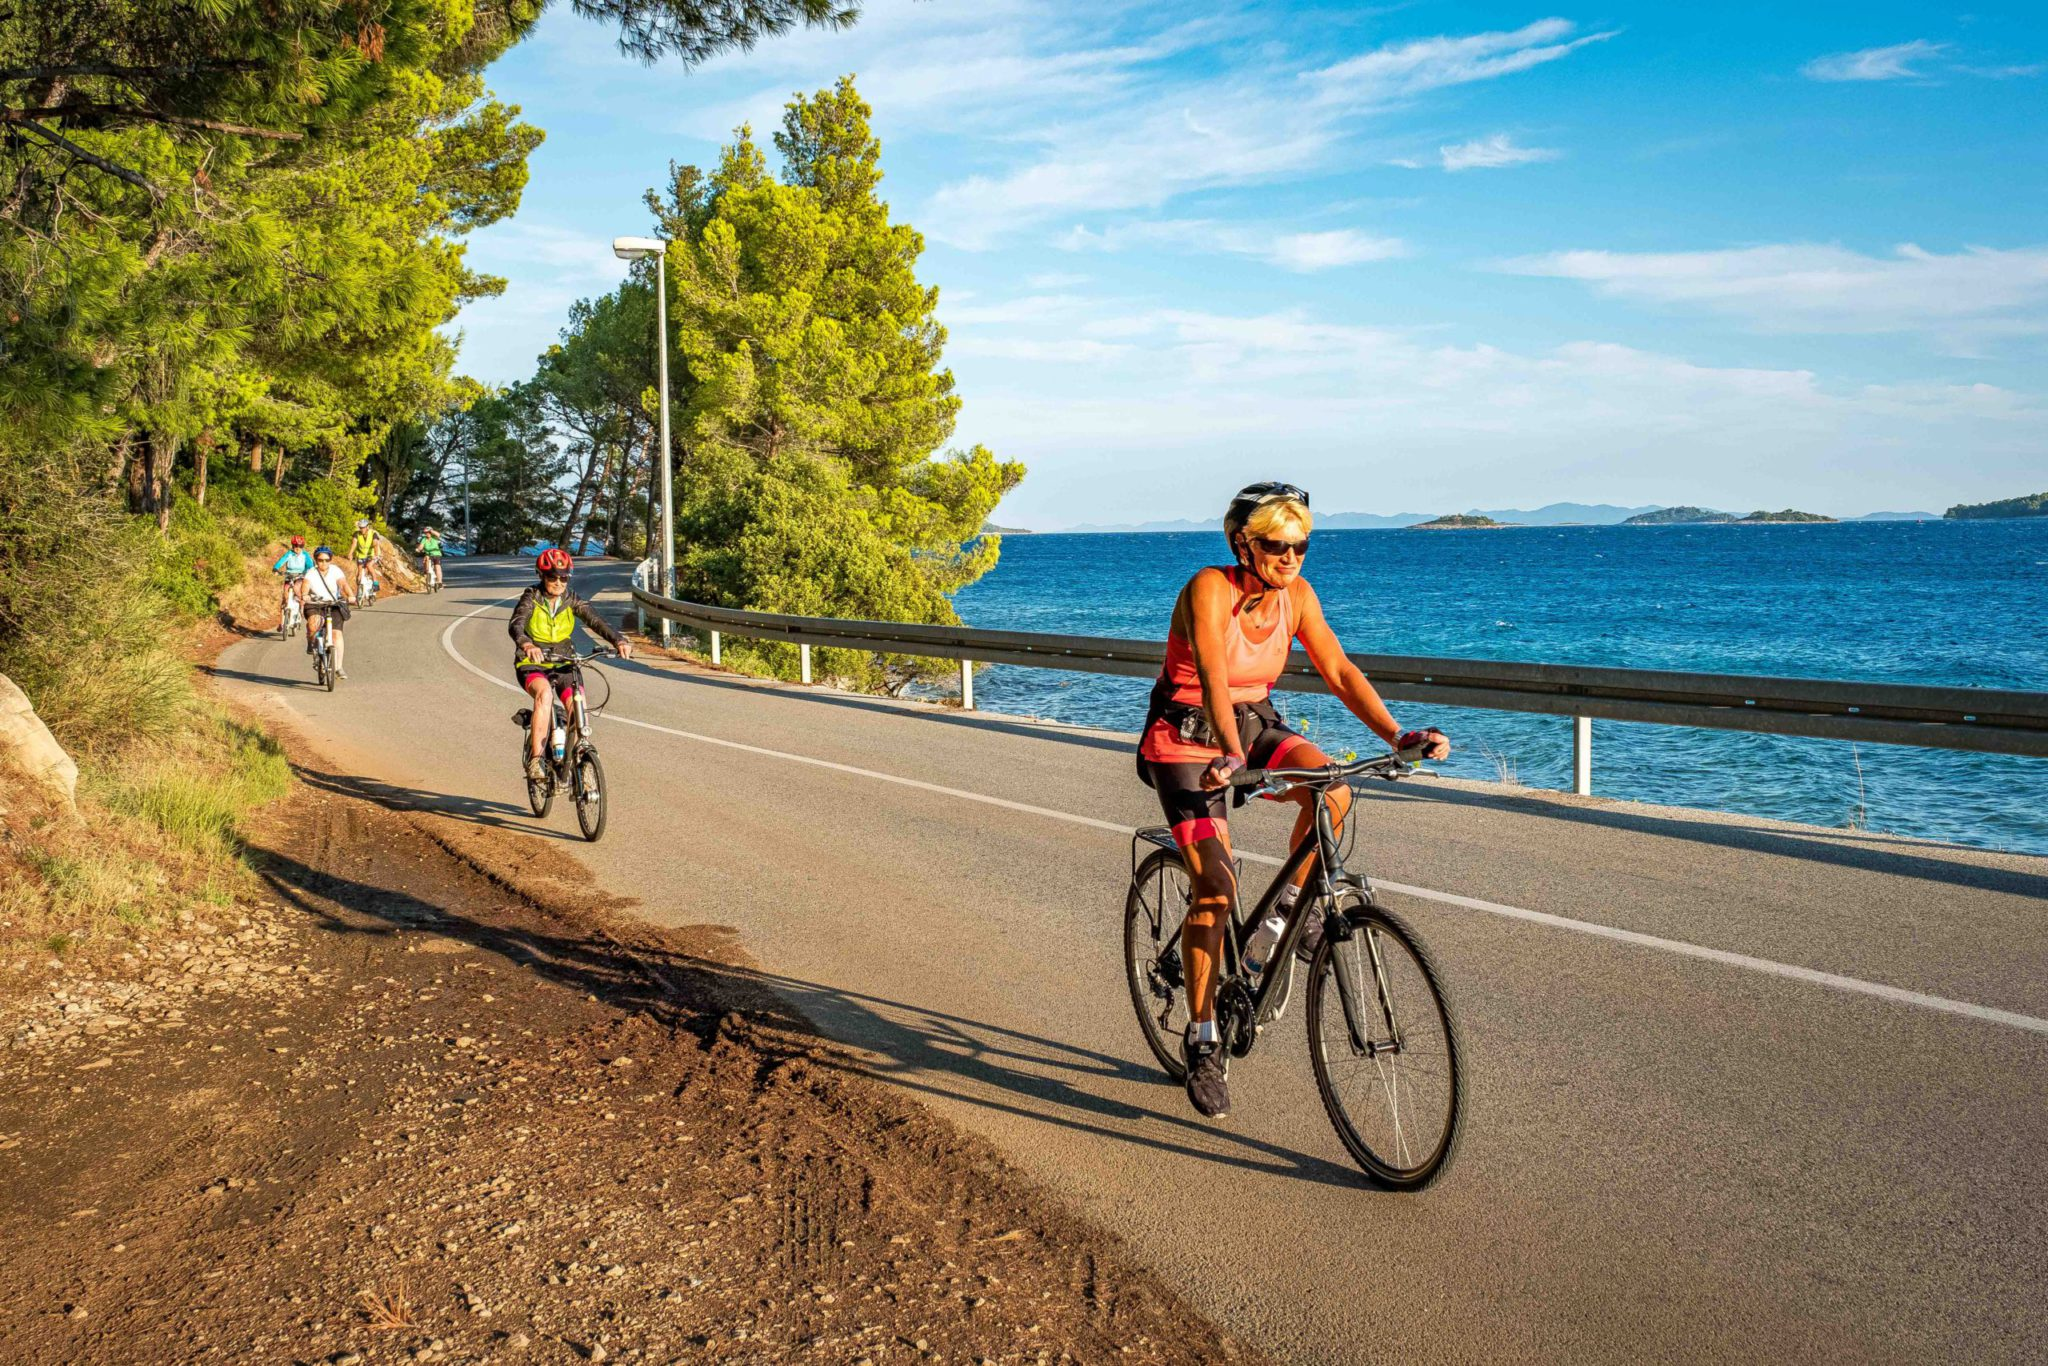 Croatia cycling holiday: Sailing Split southern route